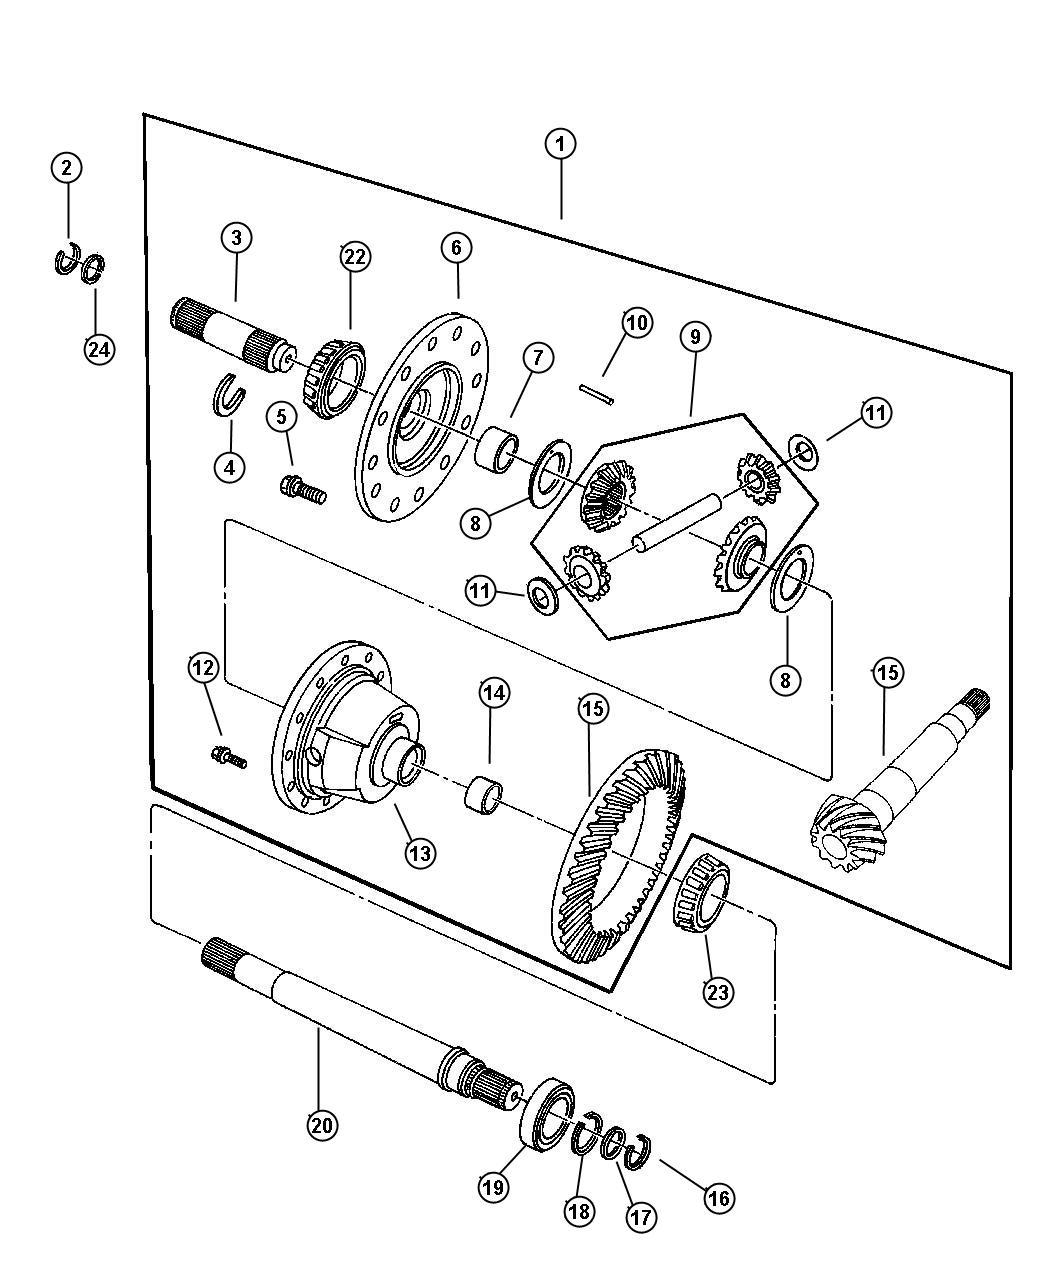 4t60e transmission solenoid location diagram